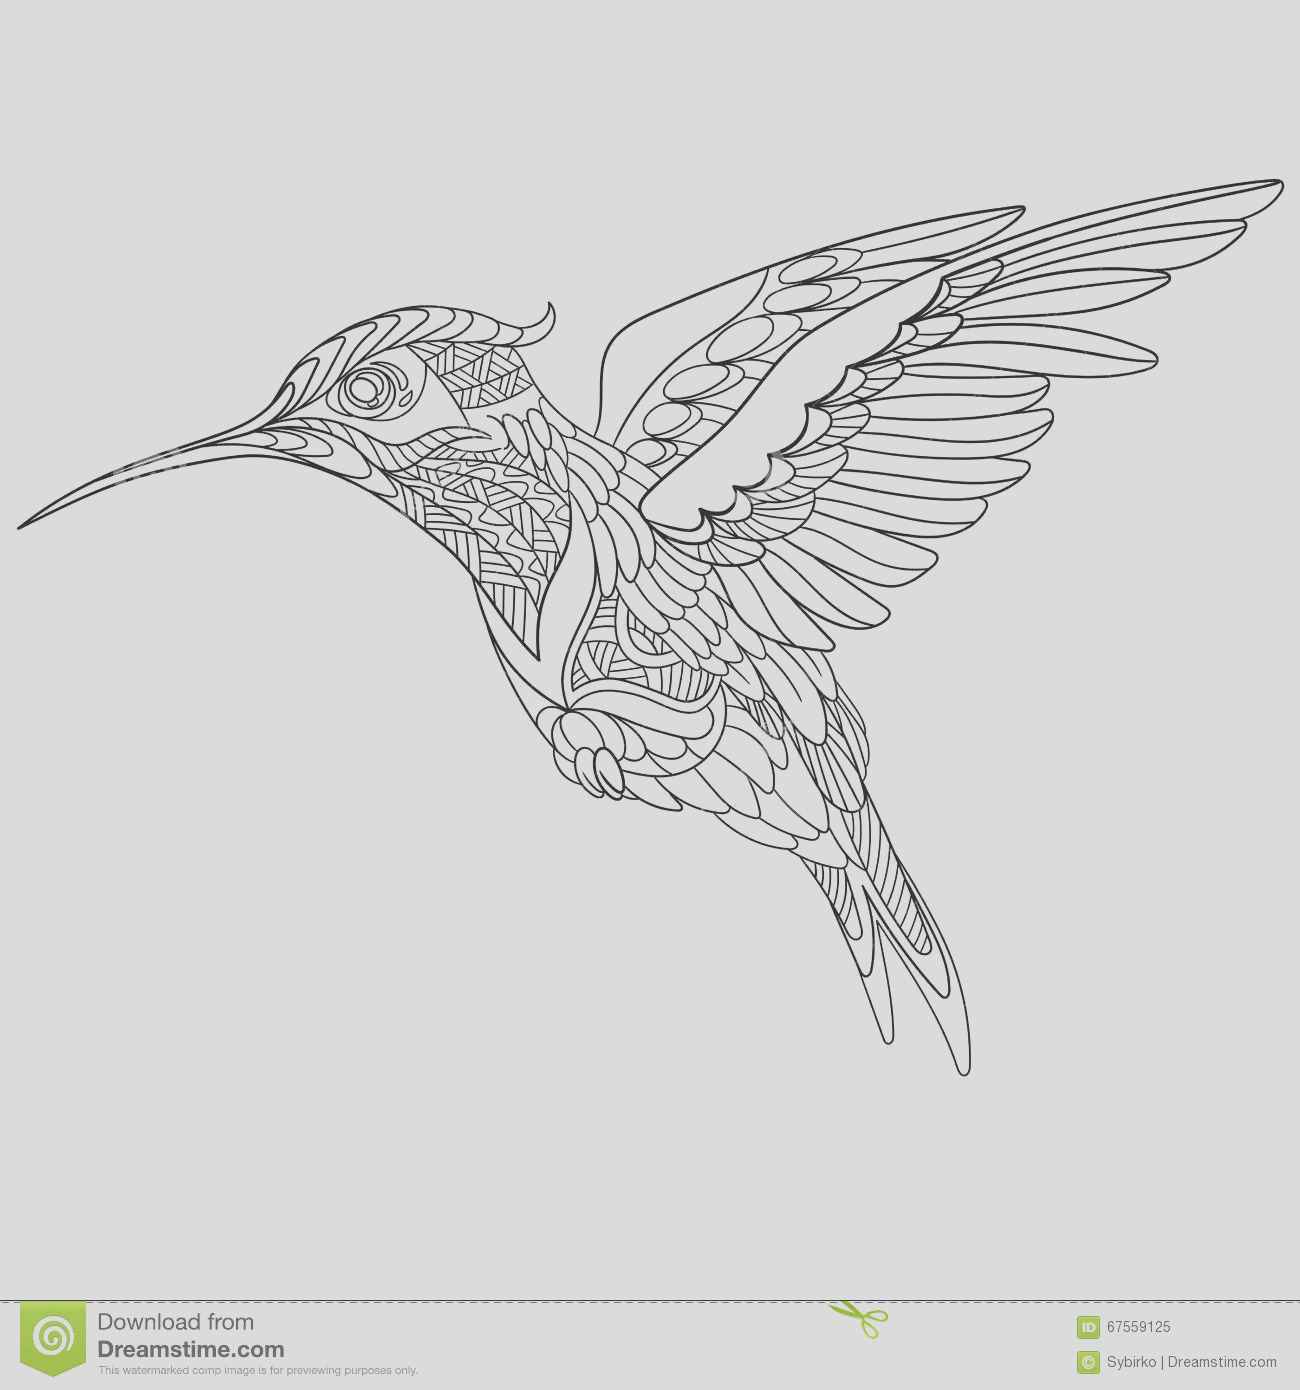 stock illustration zentangle stylized hummingbird cartoon white background sketch adult antistress coloring page hand drawn doodle image